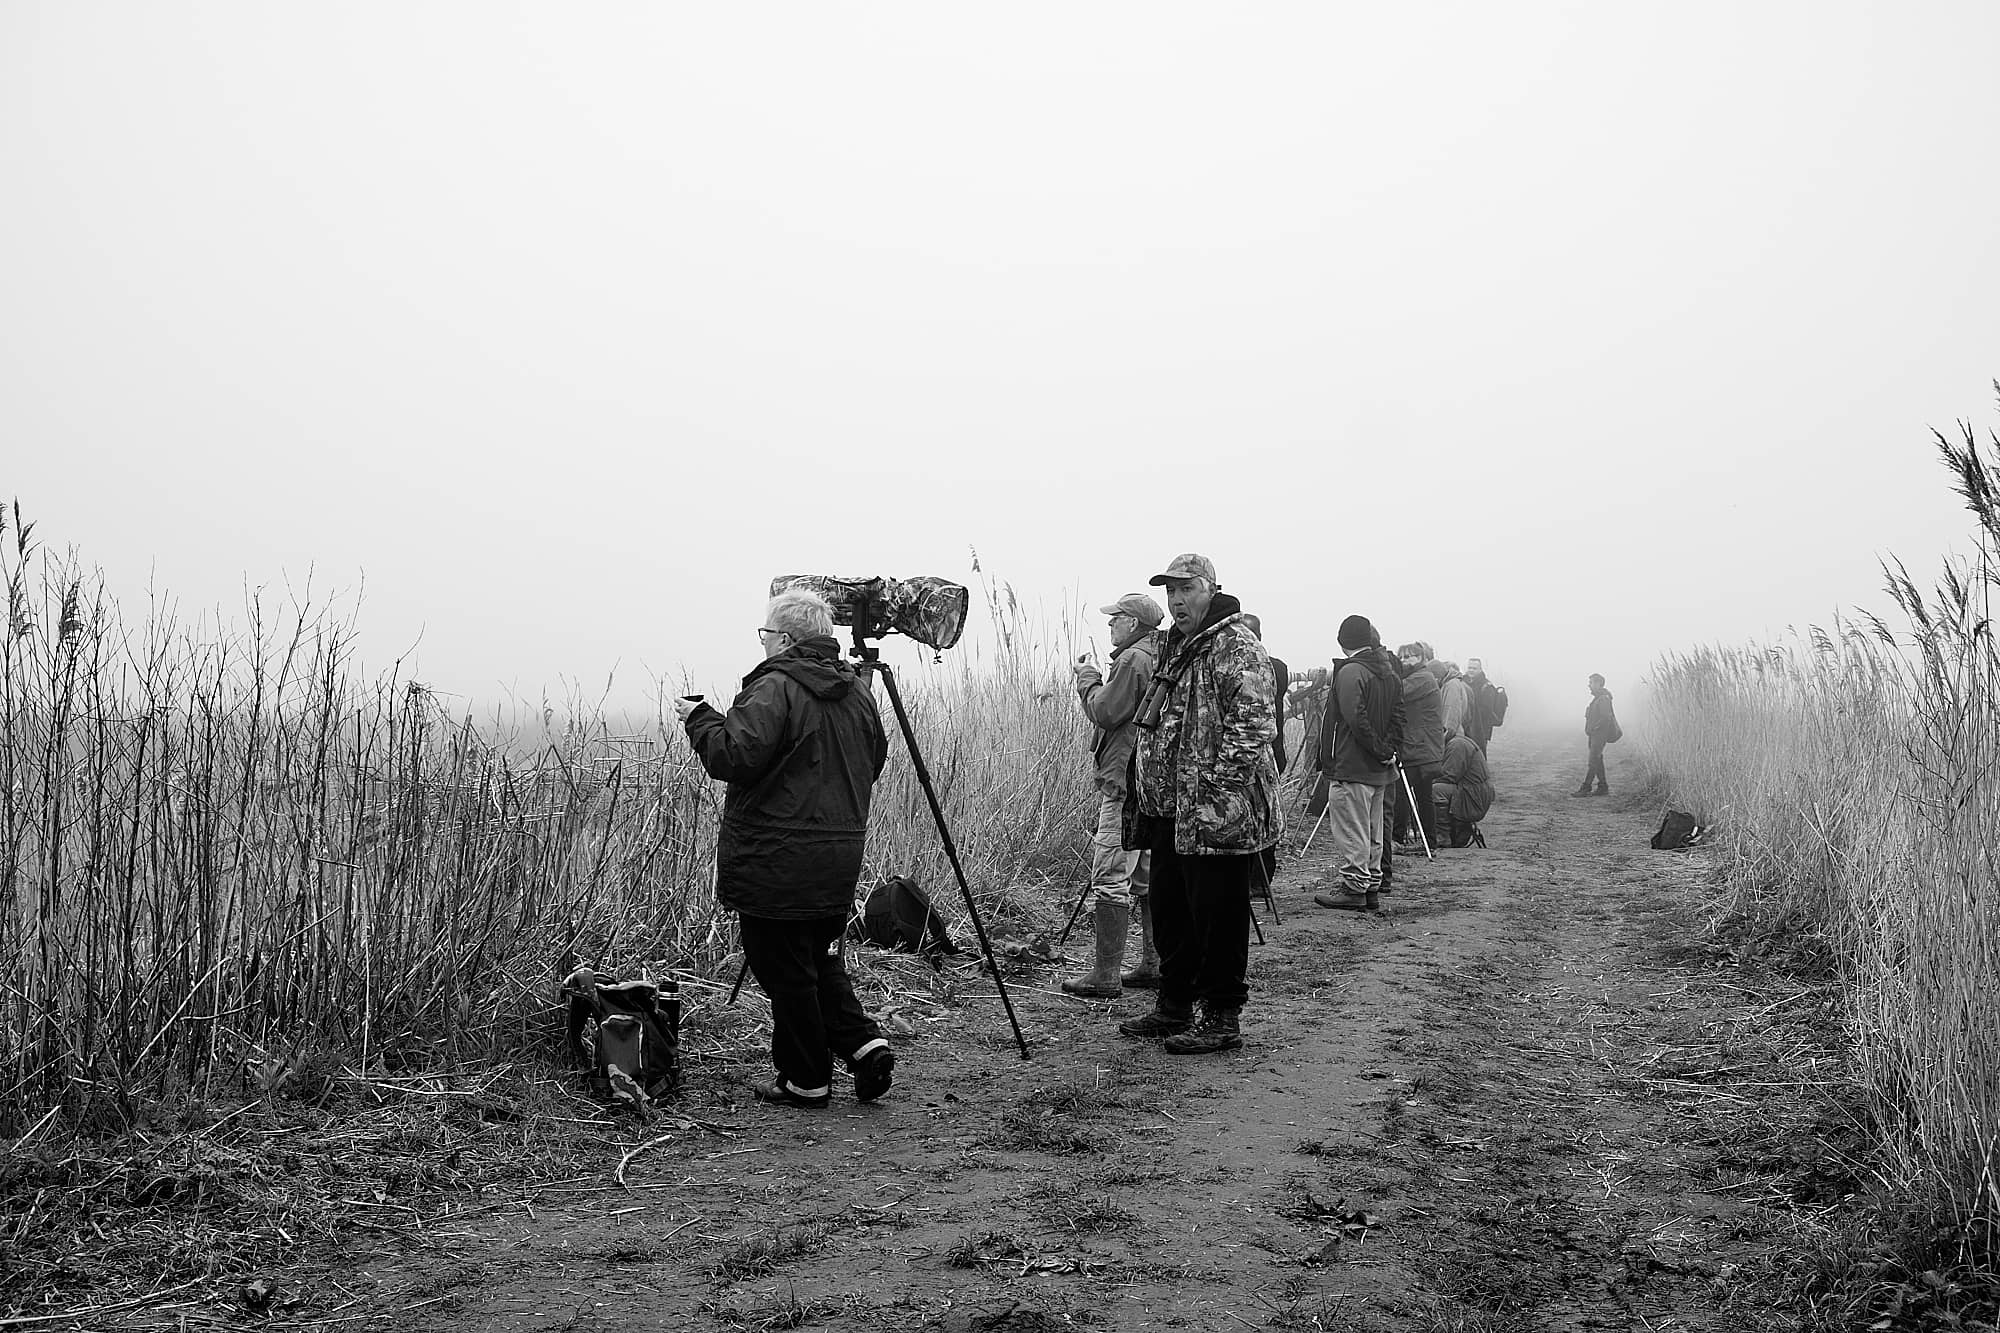 birdwatchers hoping to see an American Bittern